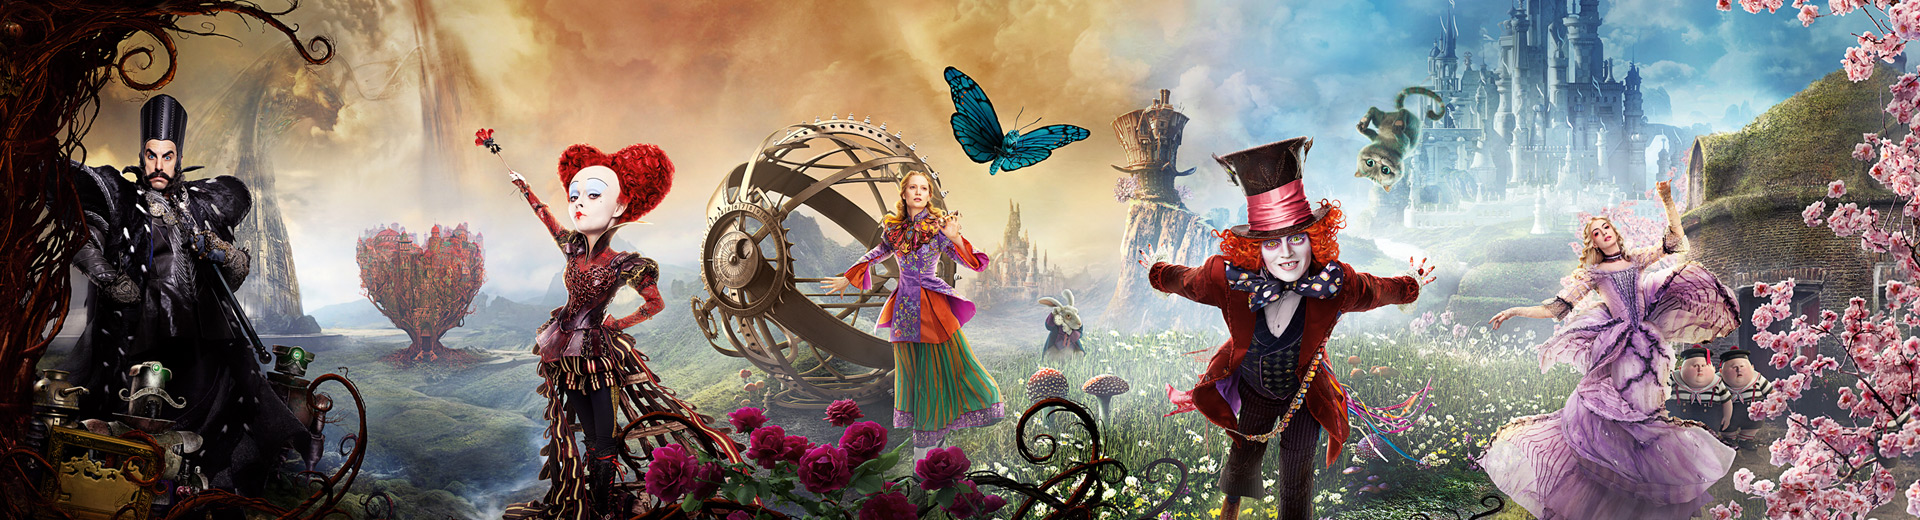 Alice Through The Looking Glass – available now on Virgin Movies